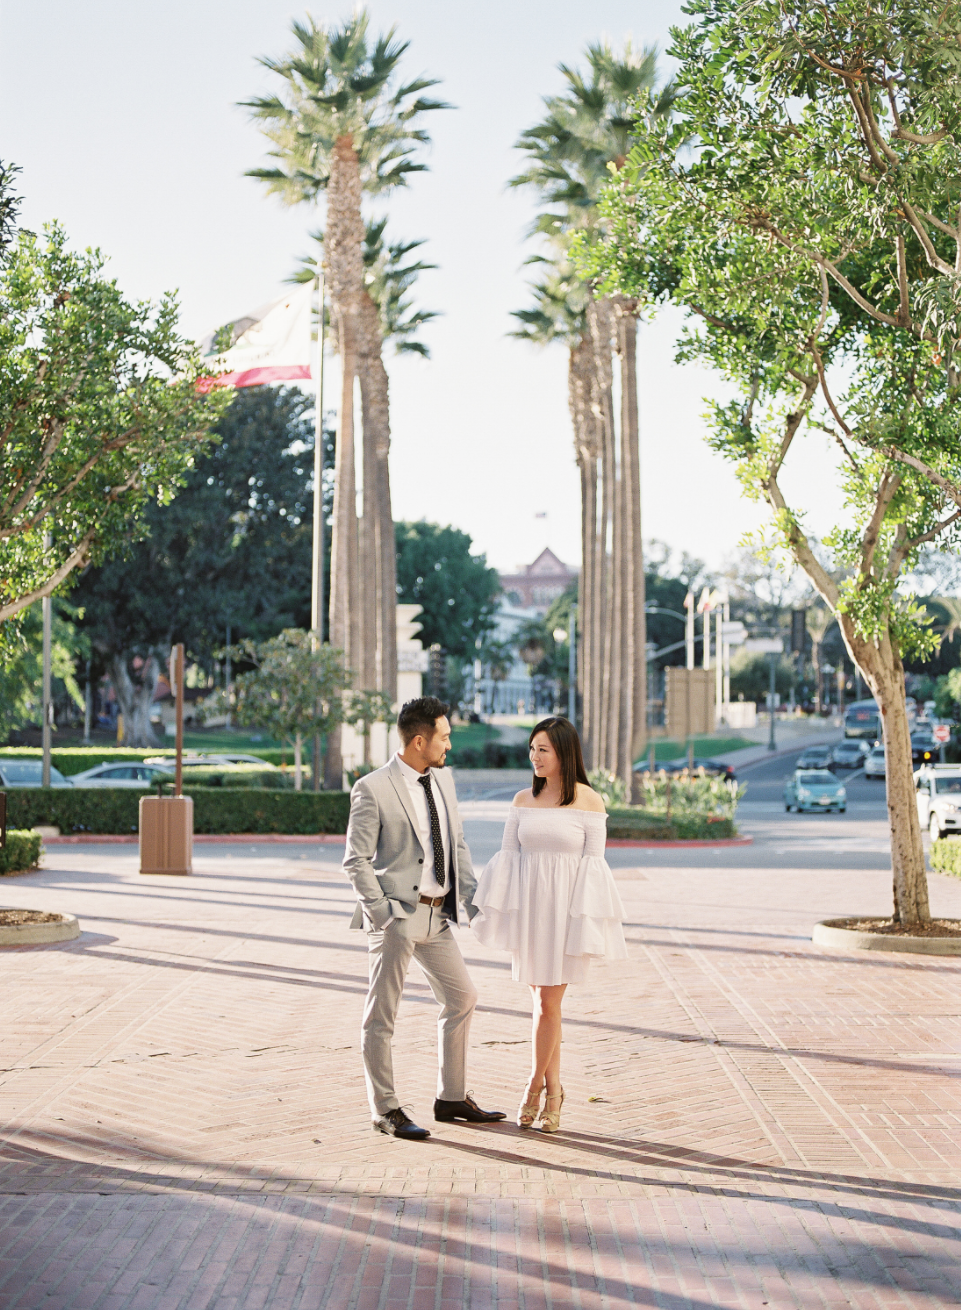 Los Angeles Engagement Session at Union Station - ERIC + LIZ